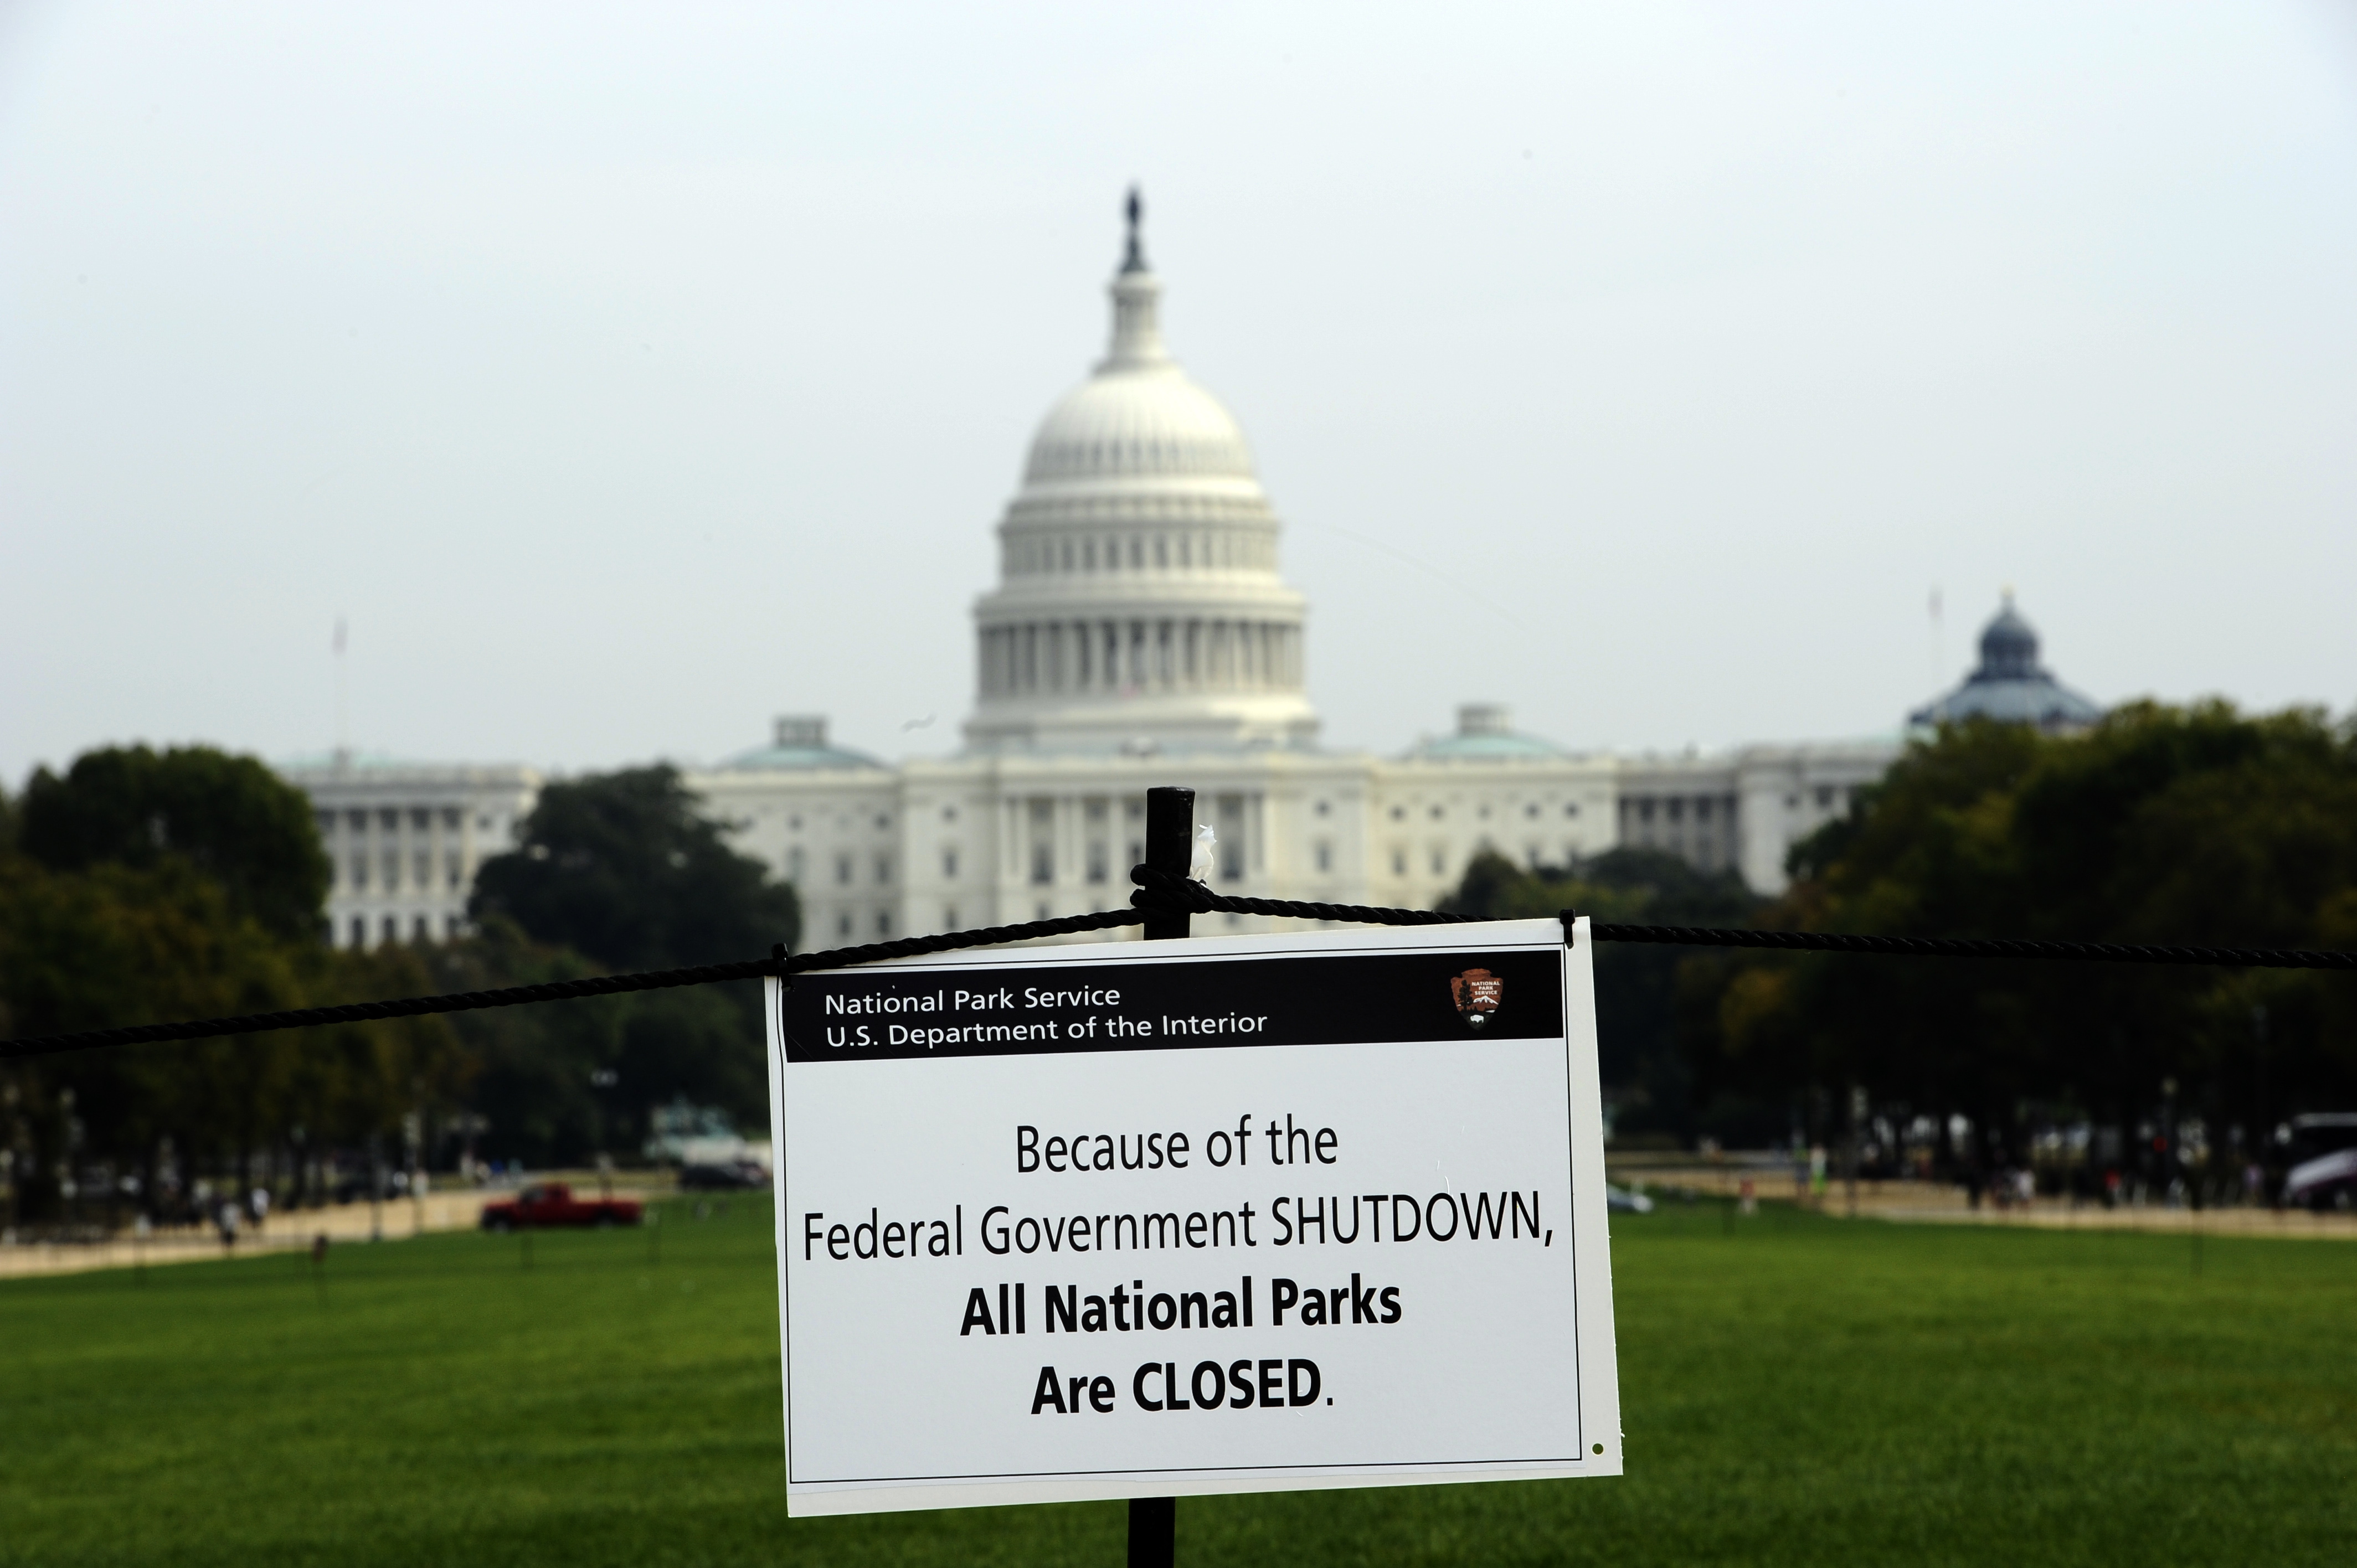 A closure sign is posted on the national mall near the US Capitol in Washington, D.C.